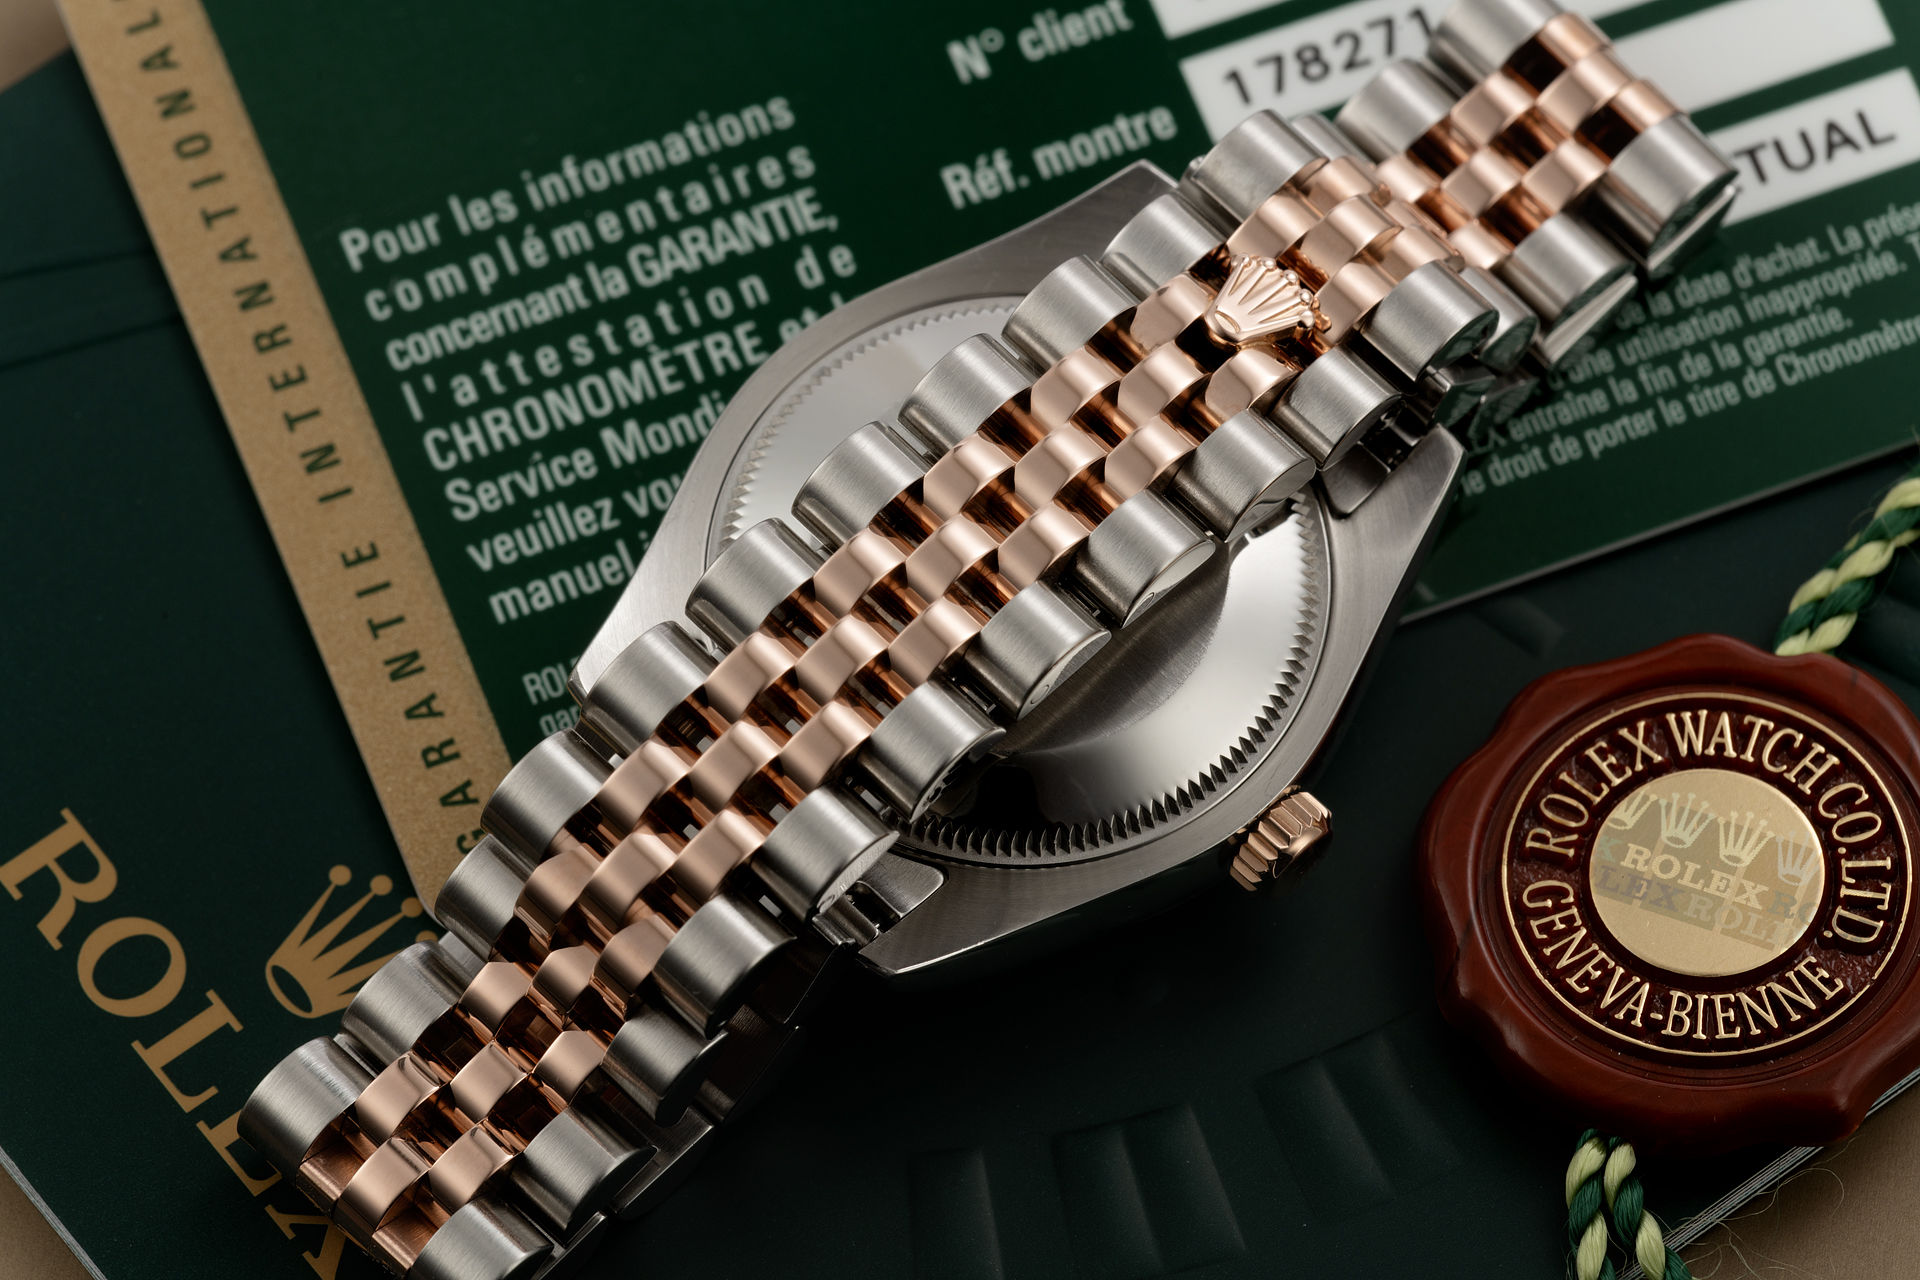 ref 178271 | Rose Gold & Steel 'Diamond Dial' | Rolex Datejust